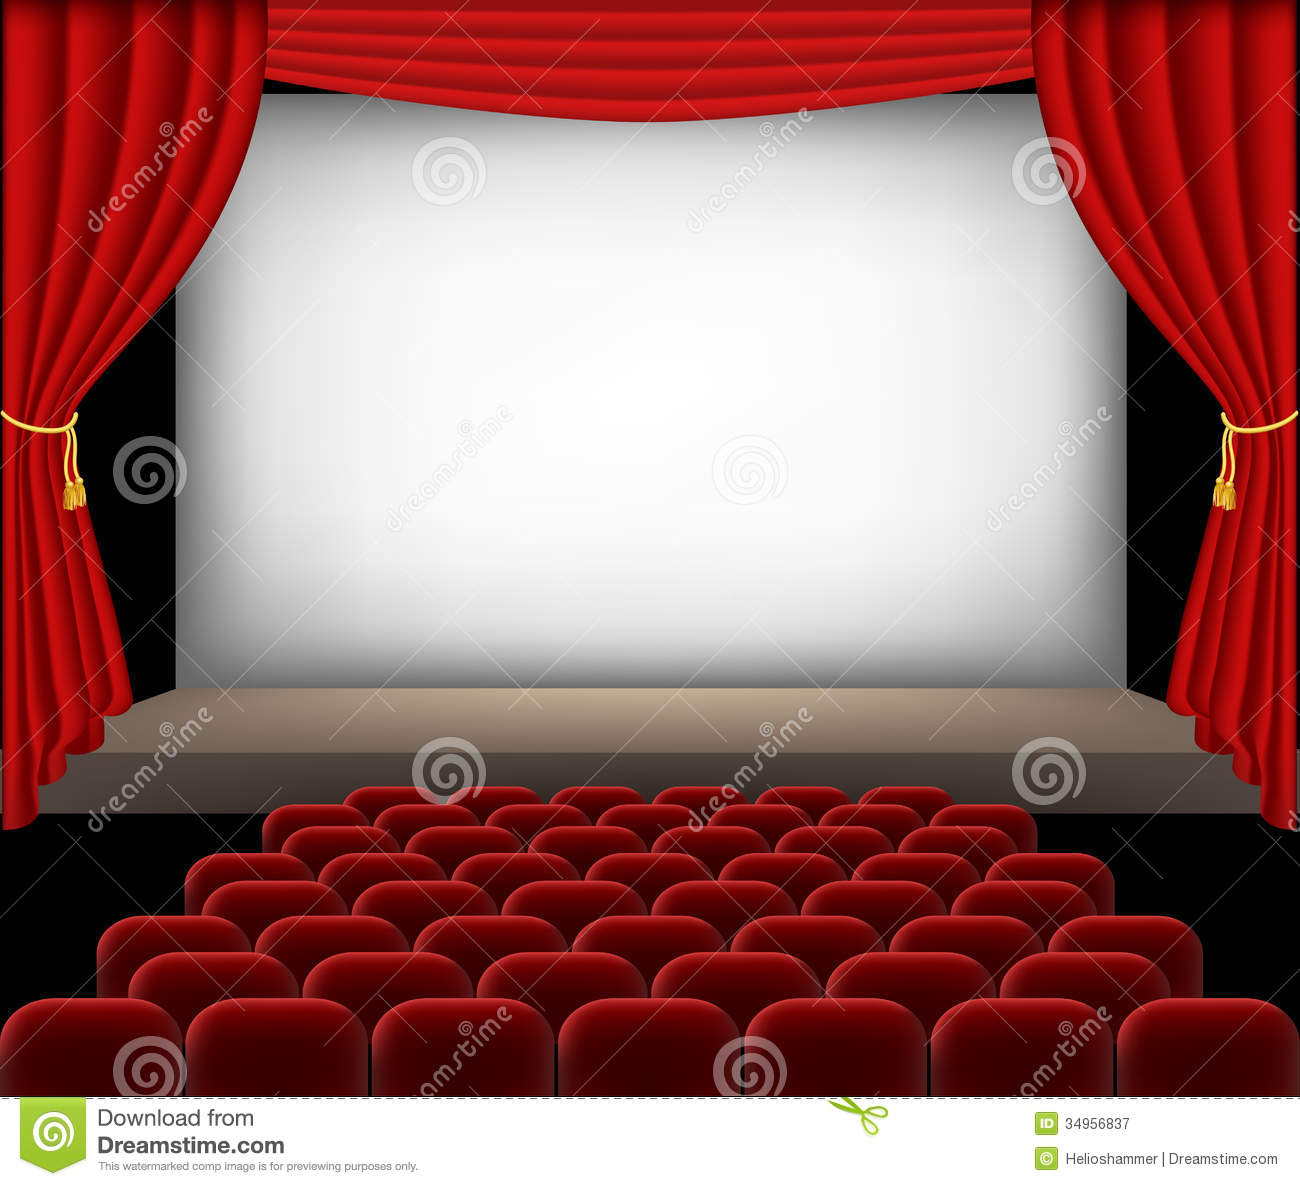 Cinema Auditorium With Red Seats And Curtains Royalty Free Stock.